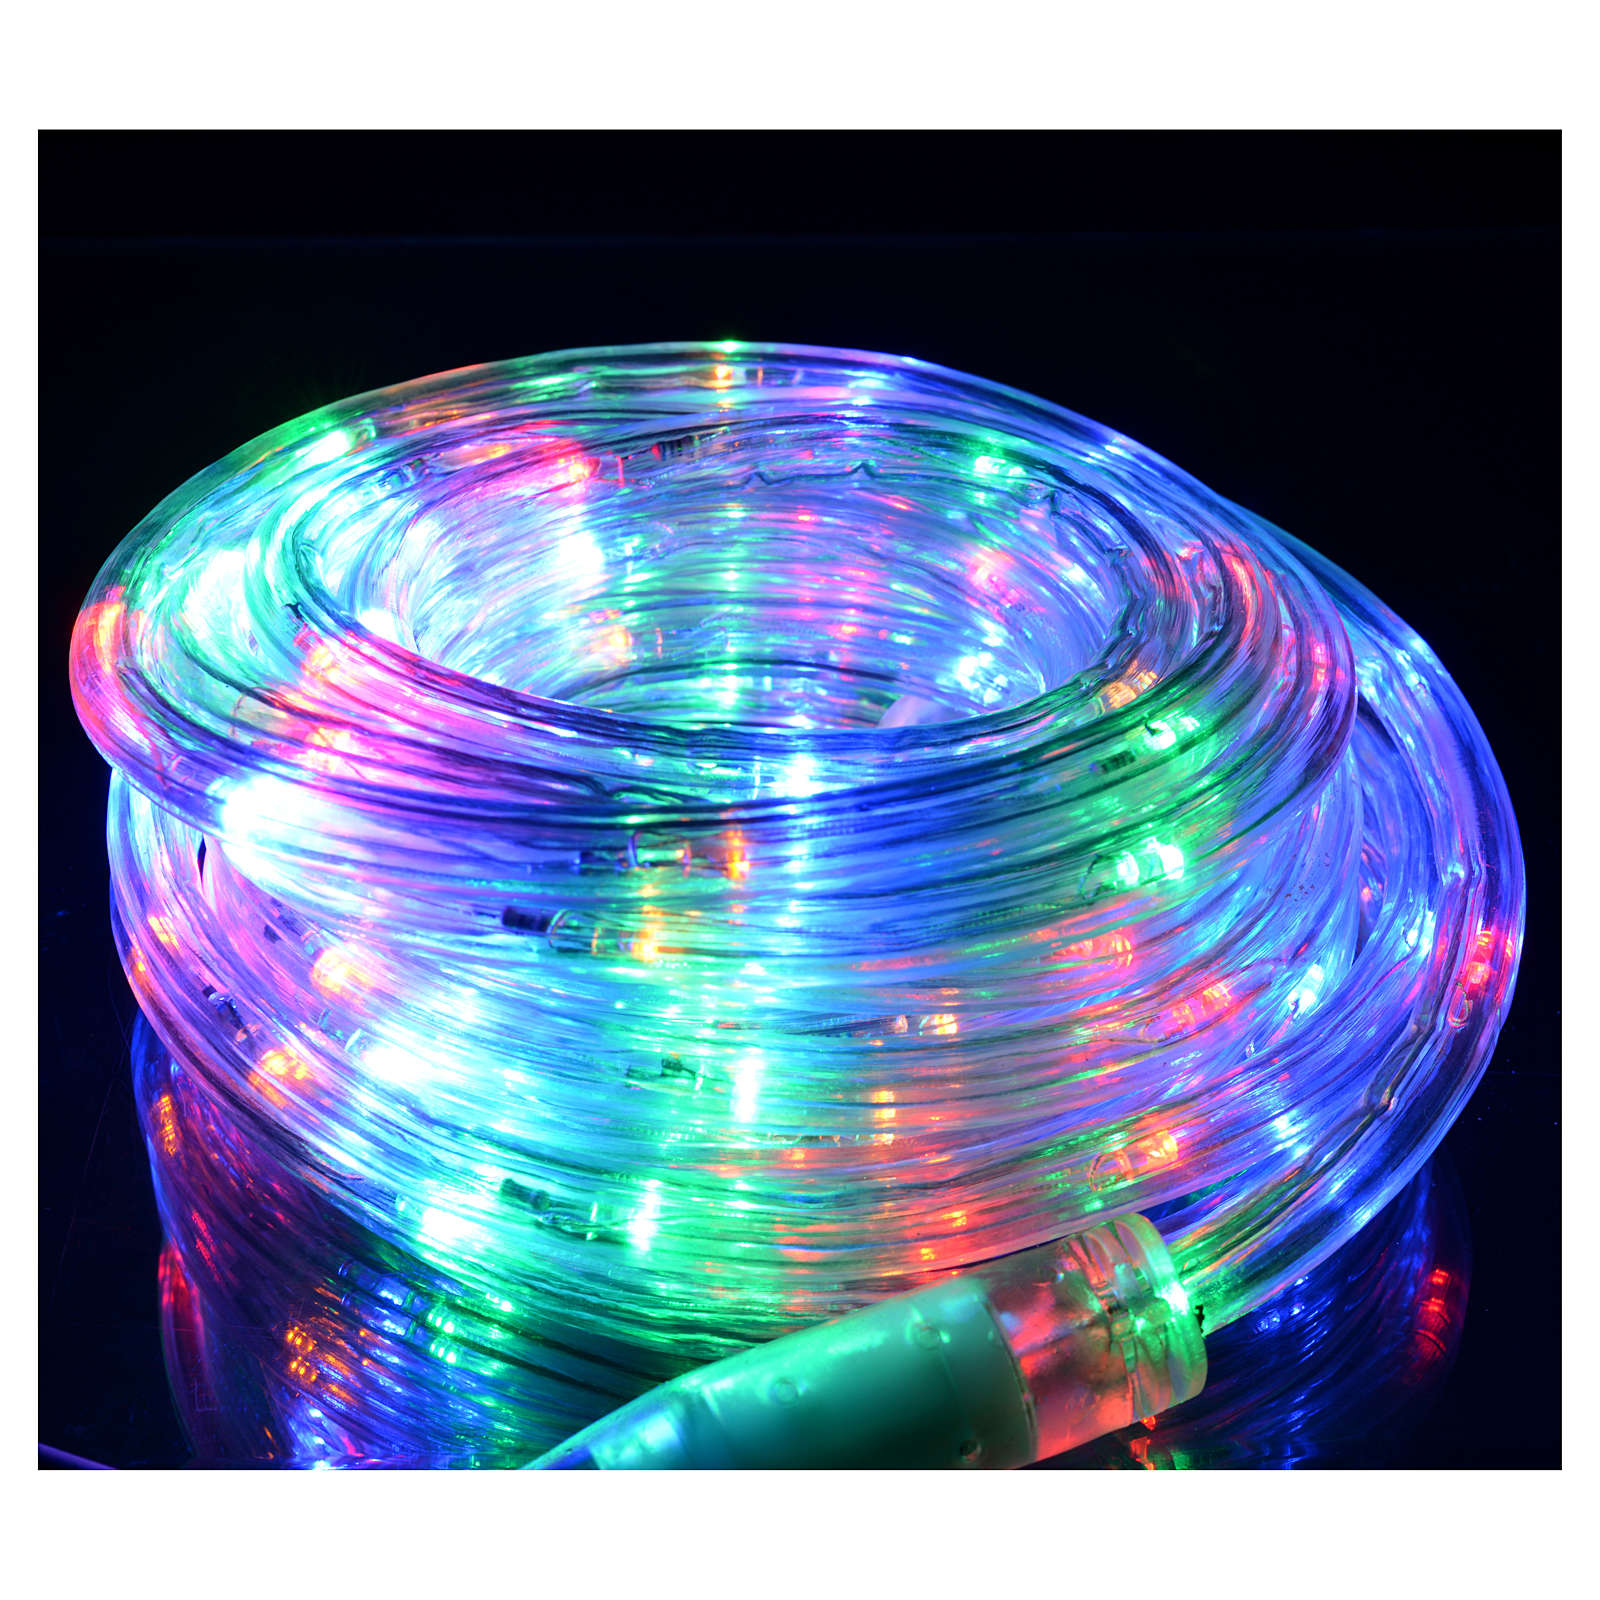 Christmas lights, tube of 6m, for indoor and outdoor use, programmable 3